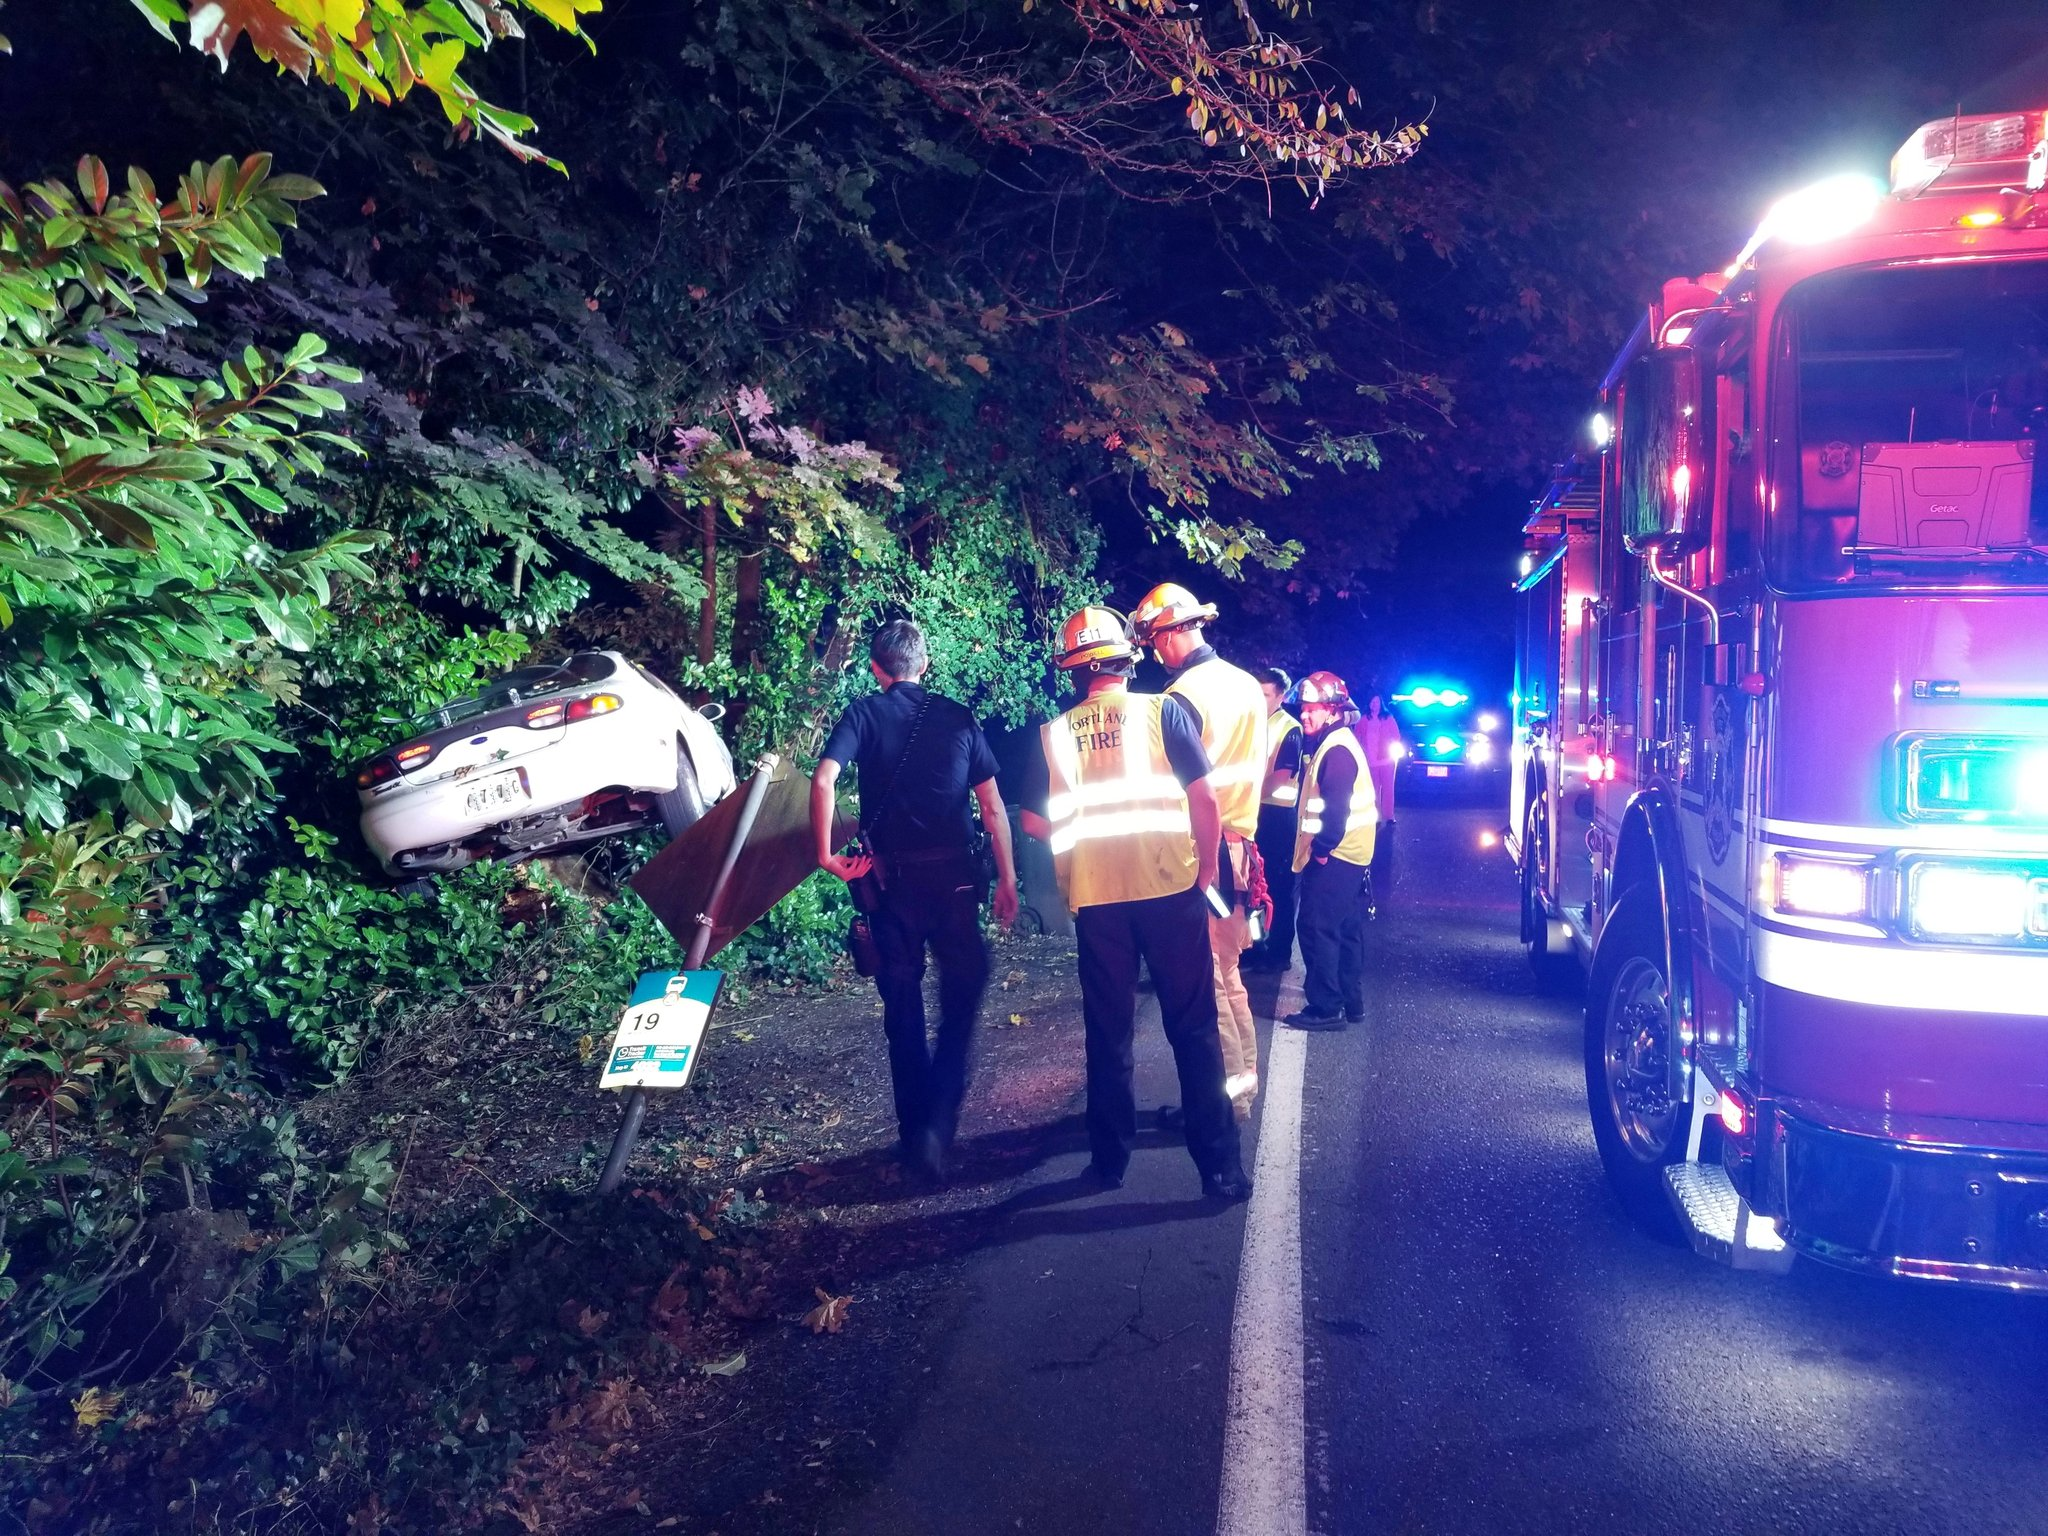 Police are searching for a male and a female occupants of a vehicle that crashed into a tree on SE Mt. Scott Blvd. early Monday morning. Photo courtesy Portland Police Bureau